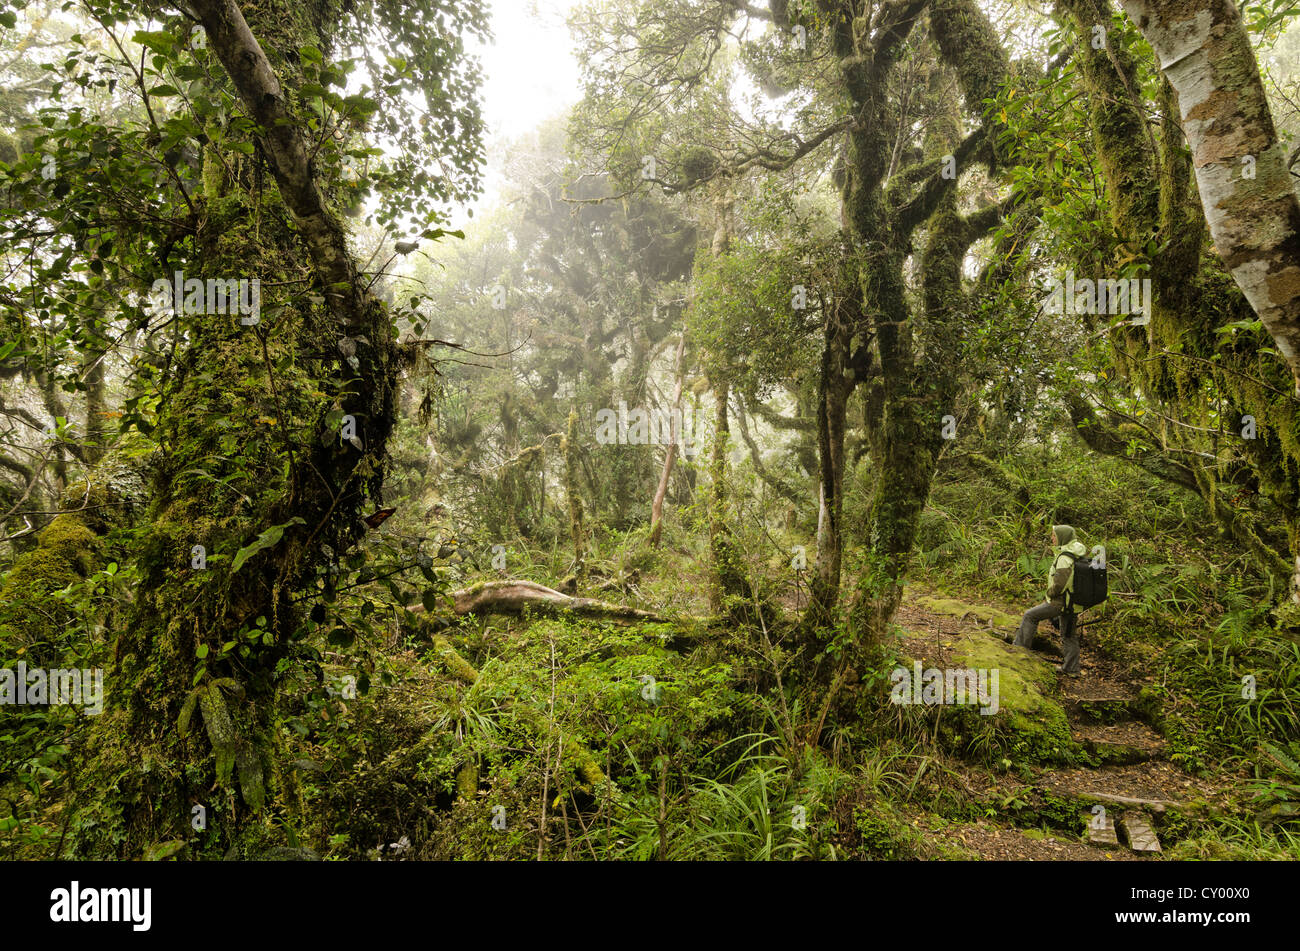 Female hiker carrying a backpack in the rain forest, hiking path in the Egmont National Park, North Island, New - Stock Image